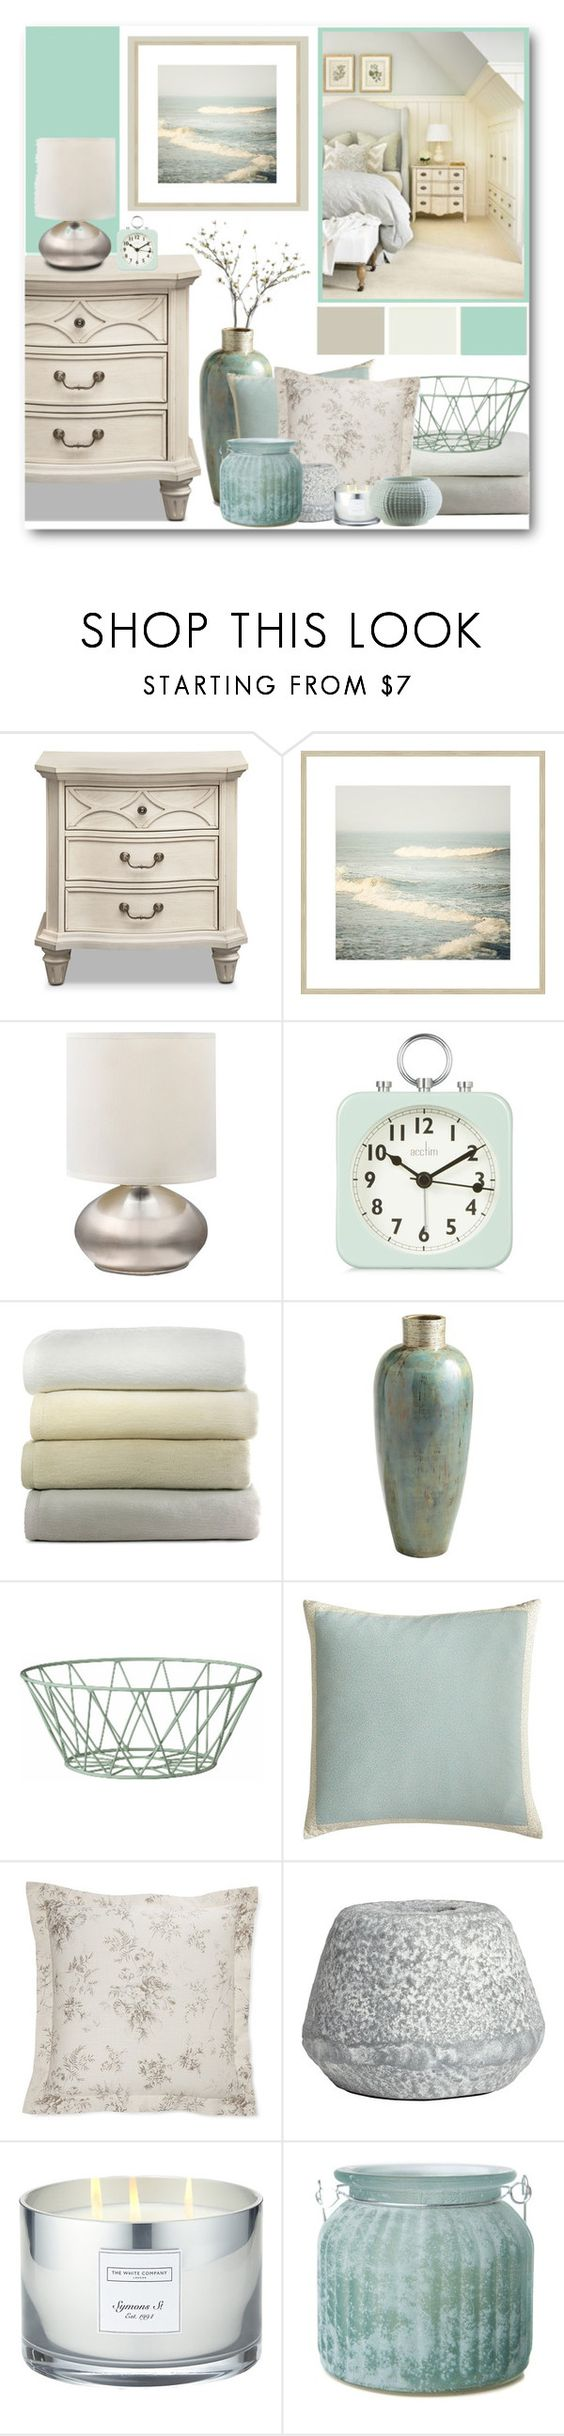 """""""Serenity is......."""" by brendariley-1 ❤ liked on Polyvore featuring interior, interiors, interior design, home, home decor, interior decorating, Acctim, Peacock Alley, Pier 1 Imports and Bloomingville"""